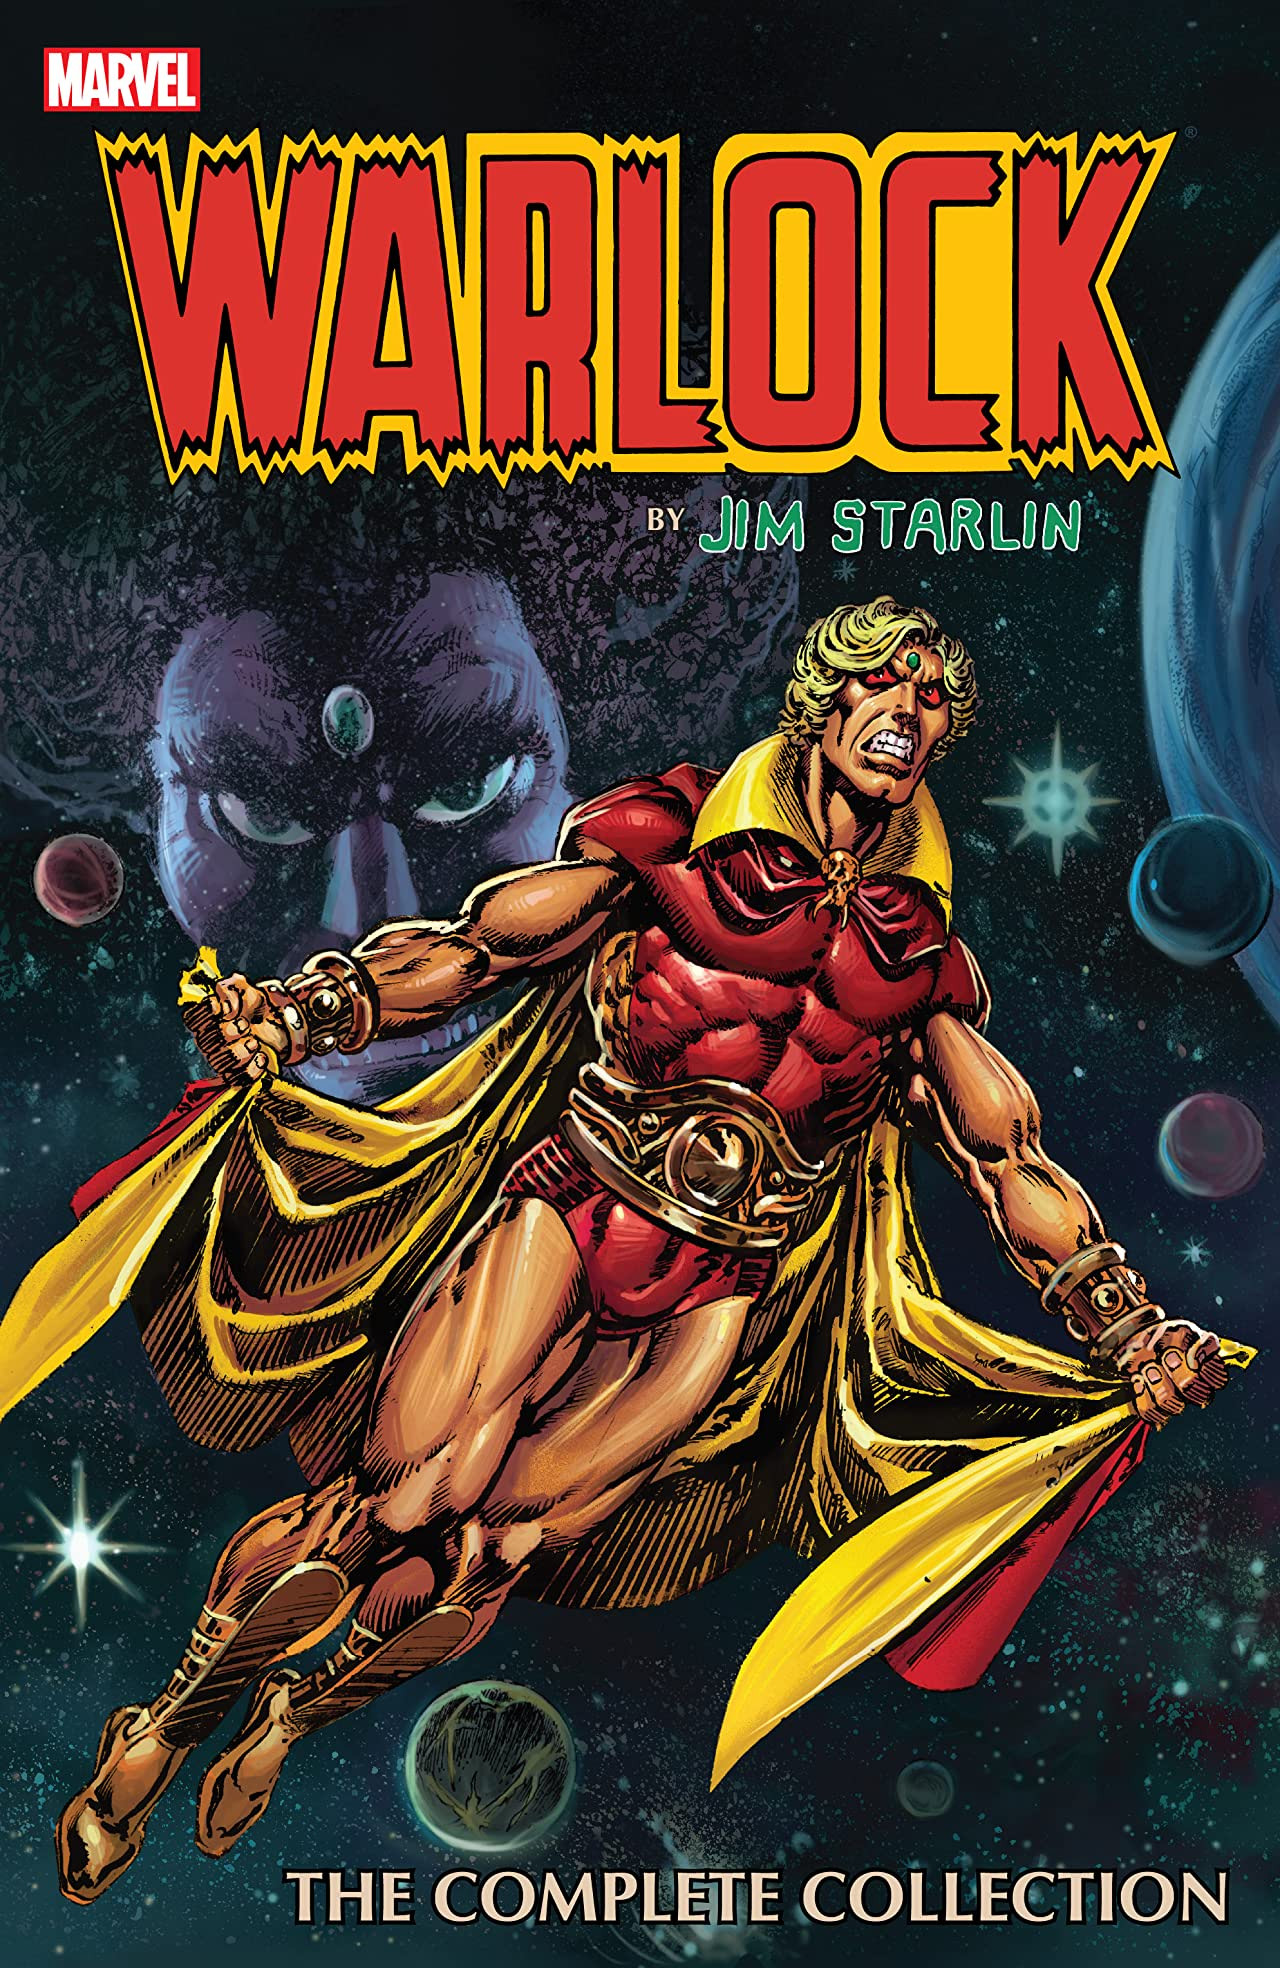 Warlock by Jim Starlin: The Complete Collection Vol 1 1